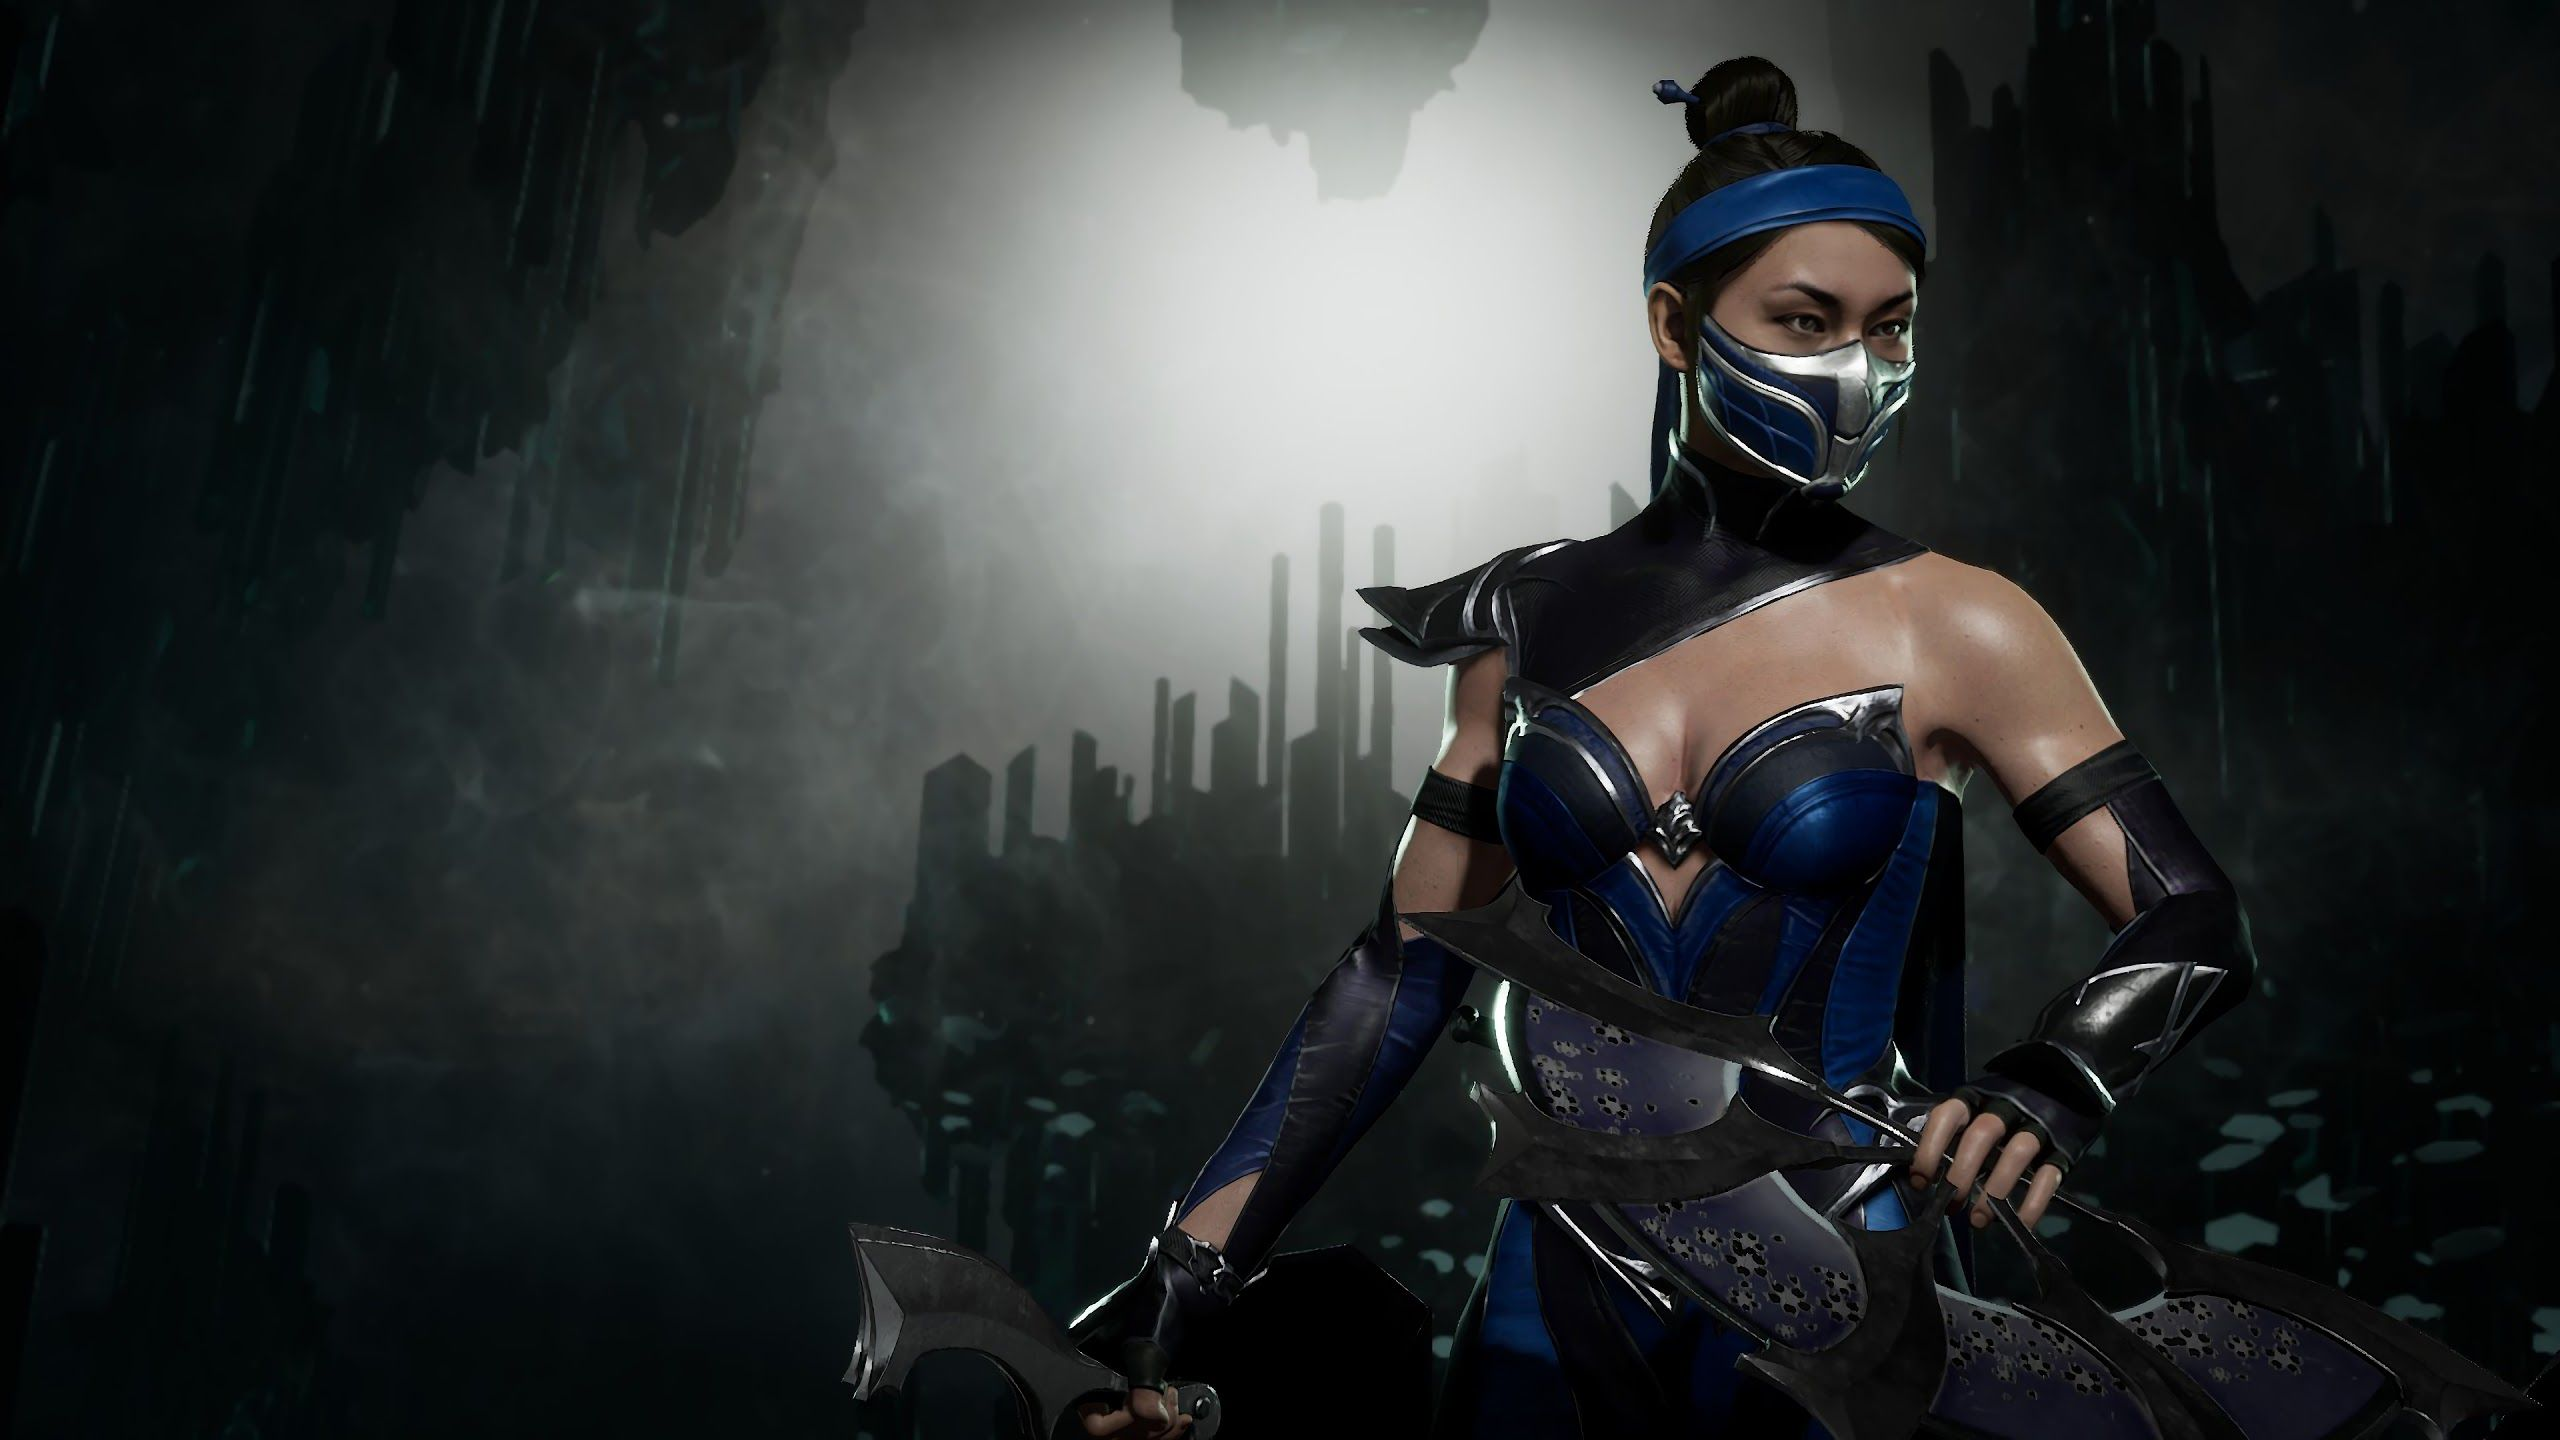 Mortal Kombat Game Girls Wallpapers Wallpaper Cave